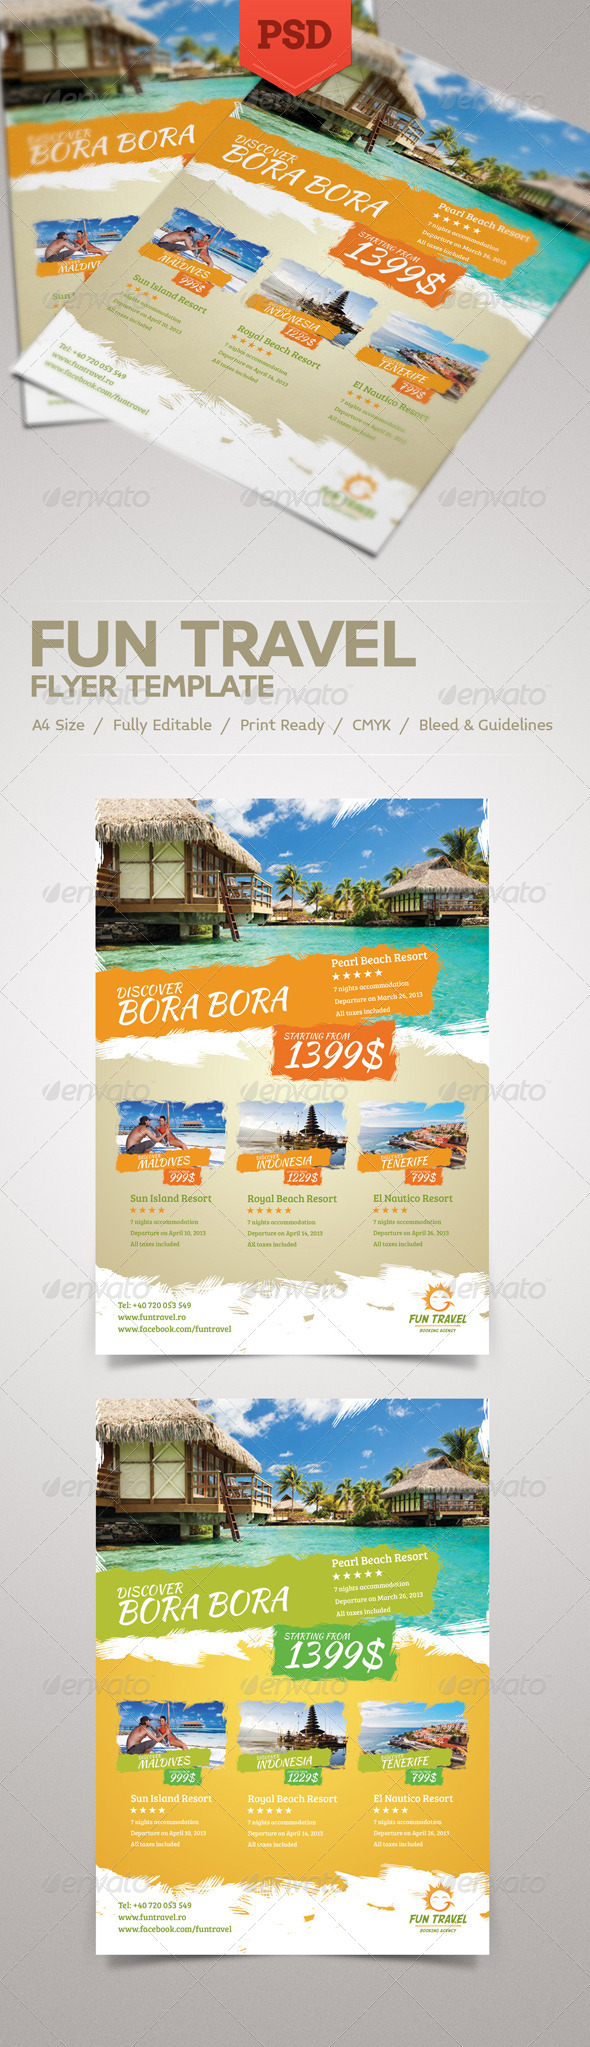 GraphicRiver Fun Travel Flyer 4148227